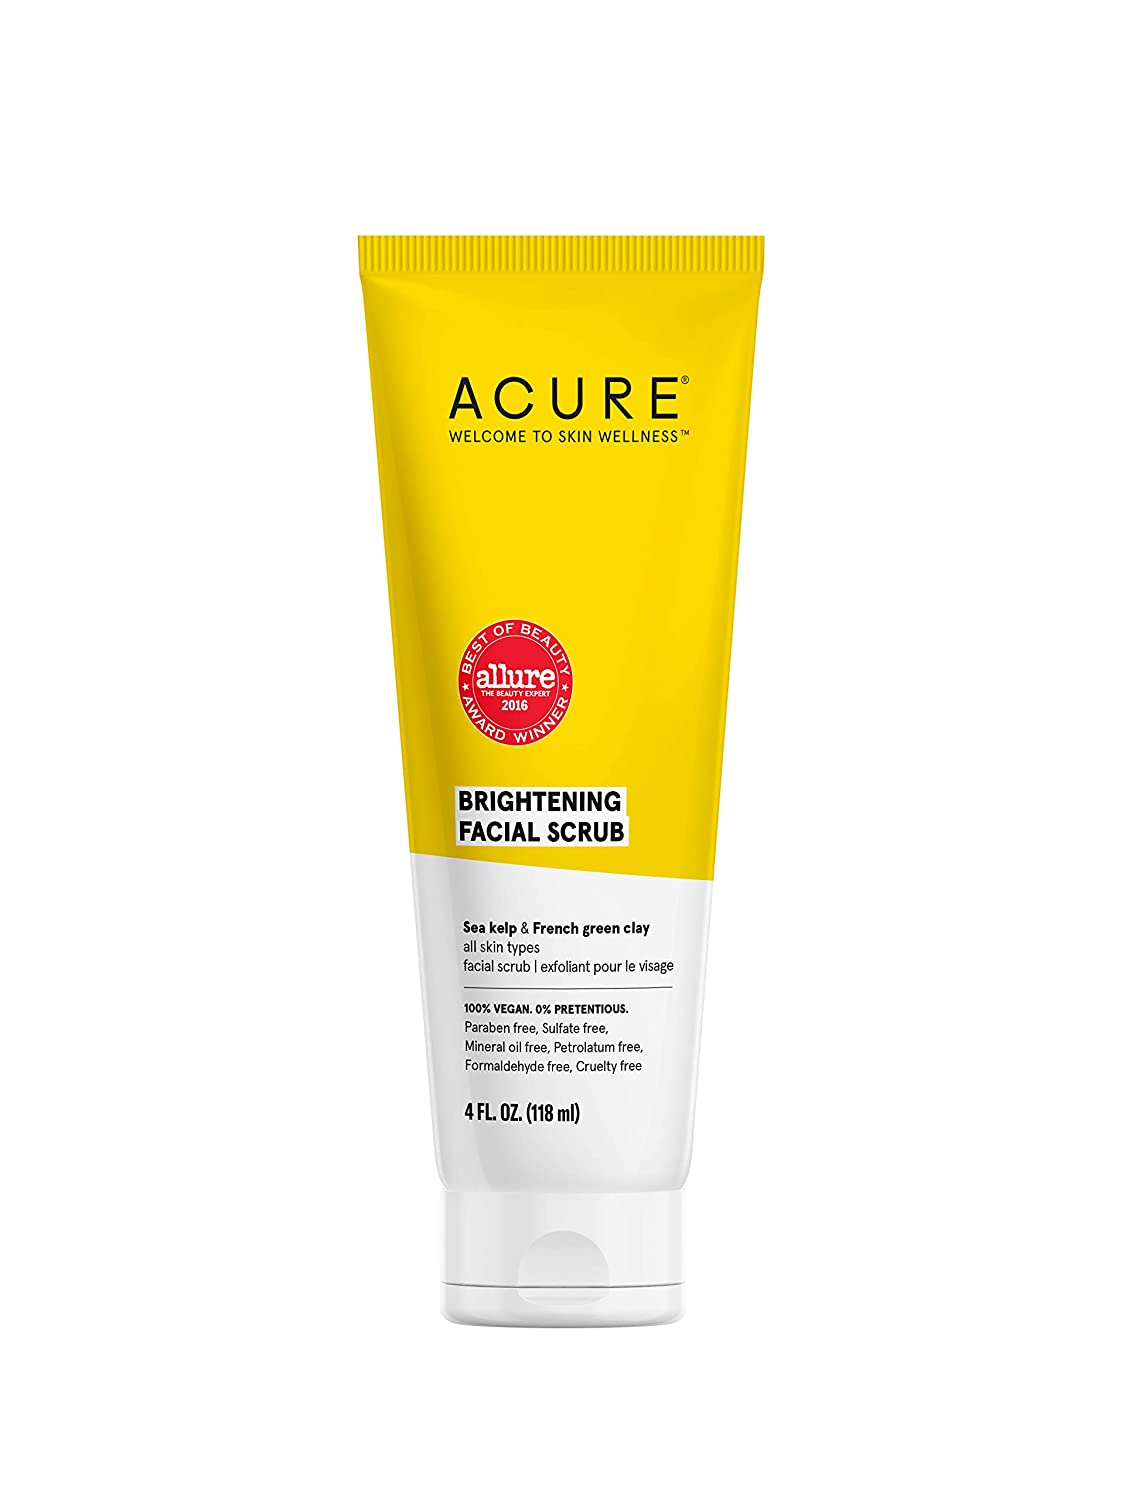 Acure Brightening Facial Scrub |100% Vegan |For A Brighter Appearance | Sea Kelp & French Green Clay - Softens, Detoxifies and Cleanses | All Skin Types | 4 Fl Oz (Packaging May Vary) (ET1012): Health & Personal Care